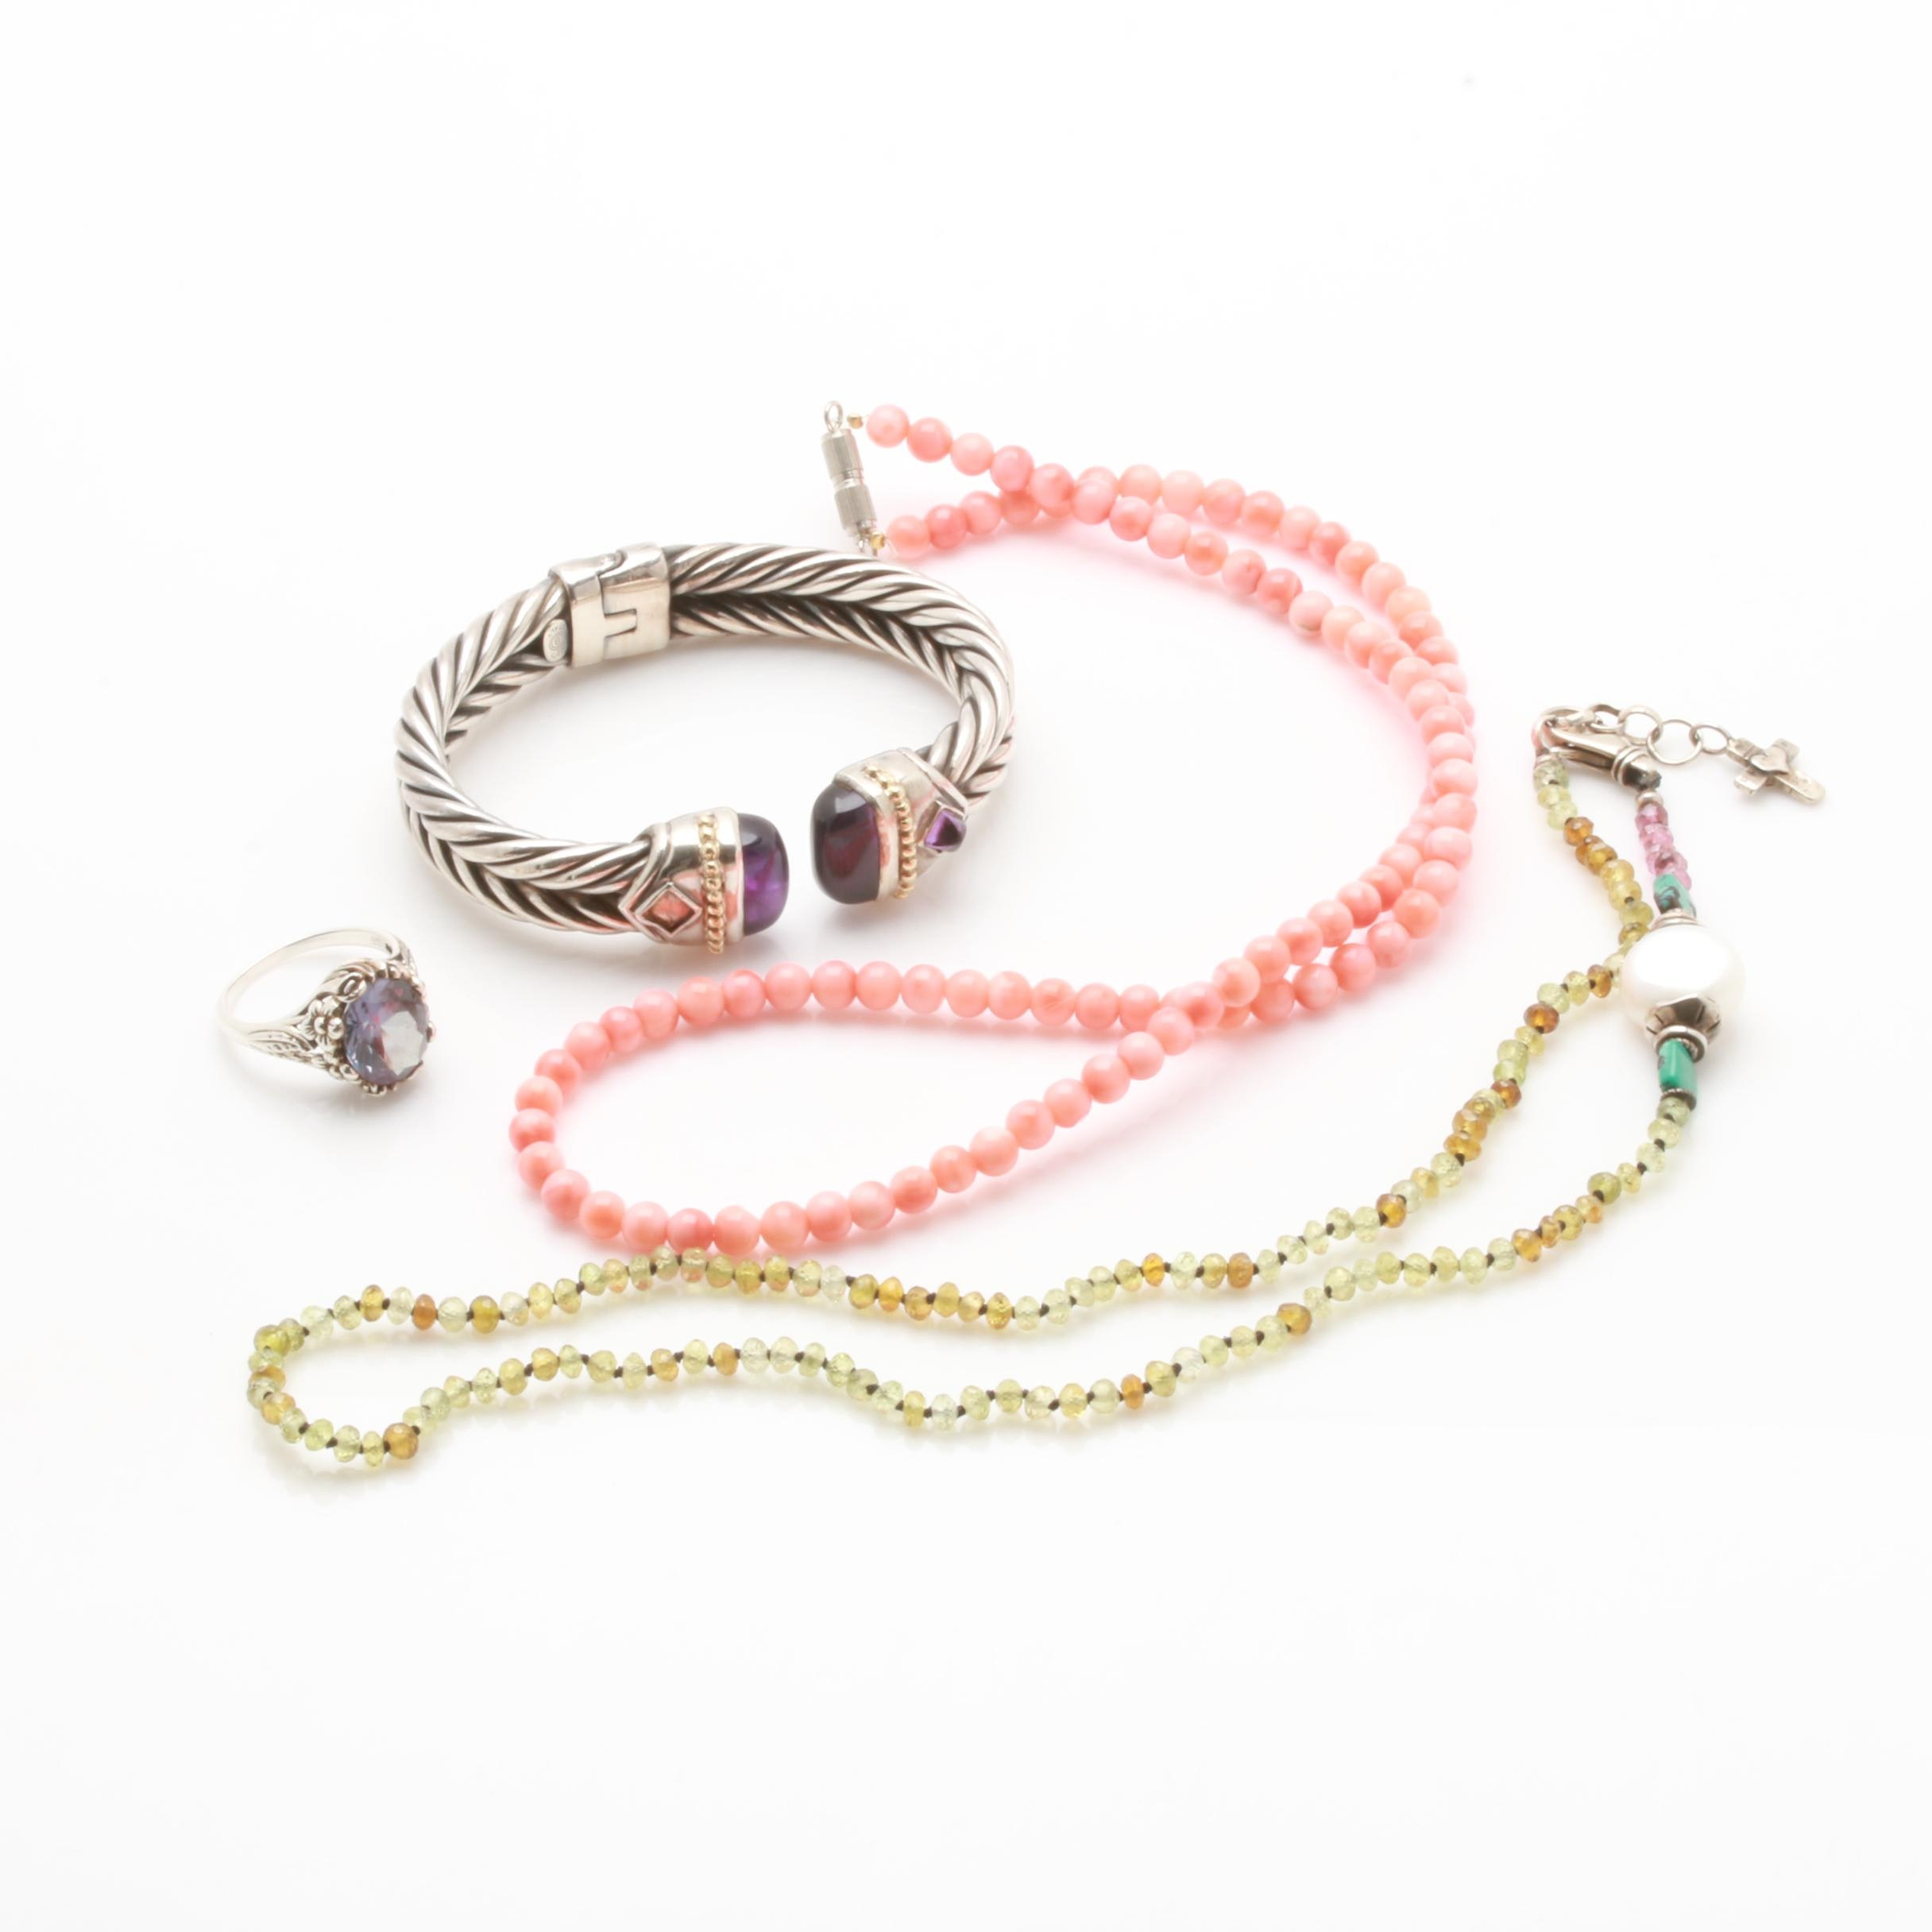 Assorted Sterling Silver Gemstone Jewelry